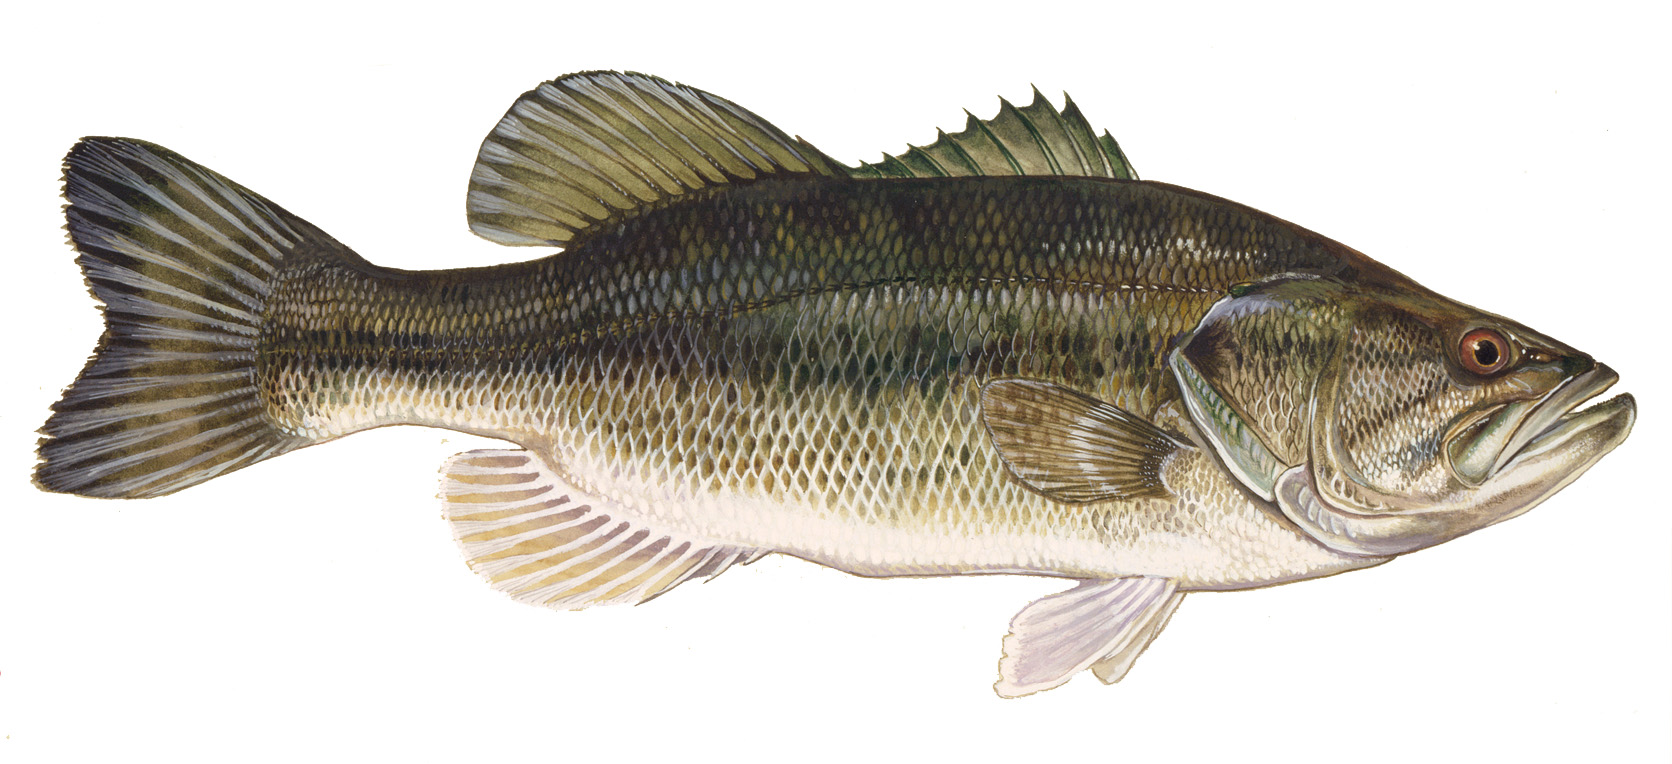 bass fish photo and wallpaper cute bass fish pictures